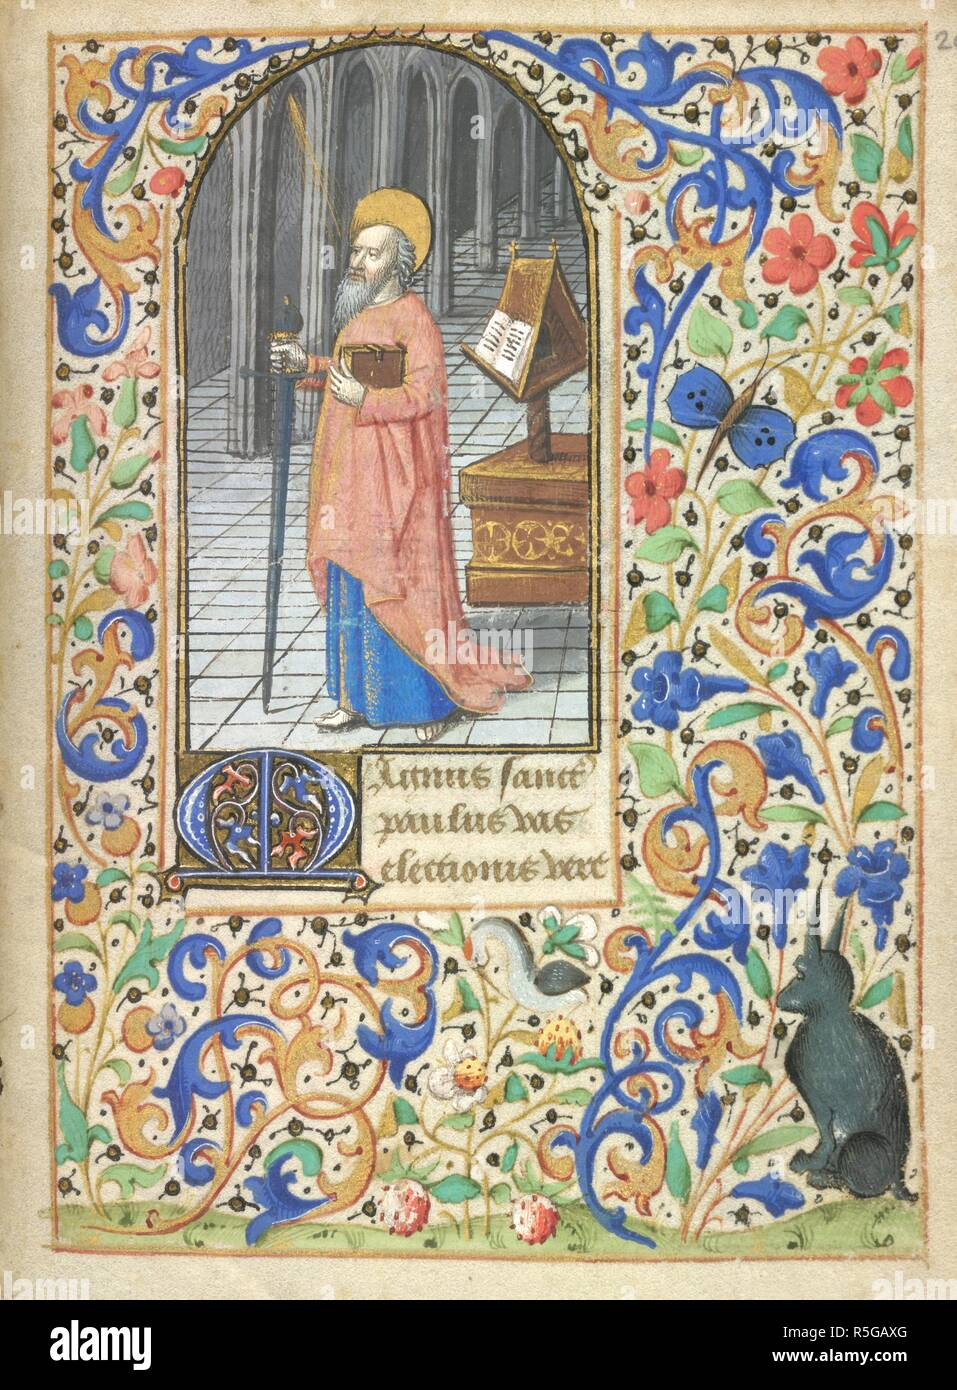 St Paul. Book of Hours. France [Loire Valley]; circa 1460-1470. [Whole folio] Suffrages to the Saints. St Paul, with staff and book, standing in a church; a lectern with open book behind him. Prayers to St Paul beginning with decorated initial 'M'. Borders with foliate decoration and outline of an animal (uncoloured)  Image taken from Book of Hours  Originally published/produced in France [Loire Valley]; circa 1460-1470. . Source: Stowe 25, f.208. Language: Latin and French. Author: Circle of the Coëtivy Master. Stock Photo